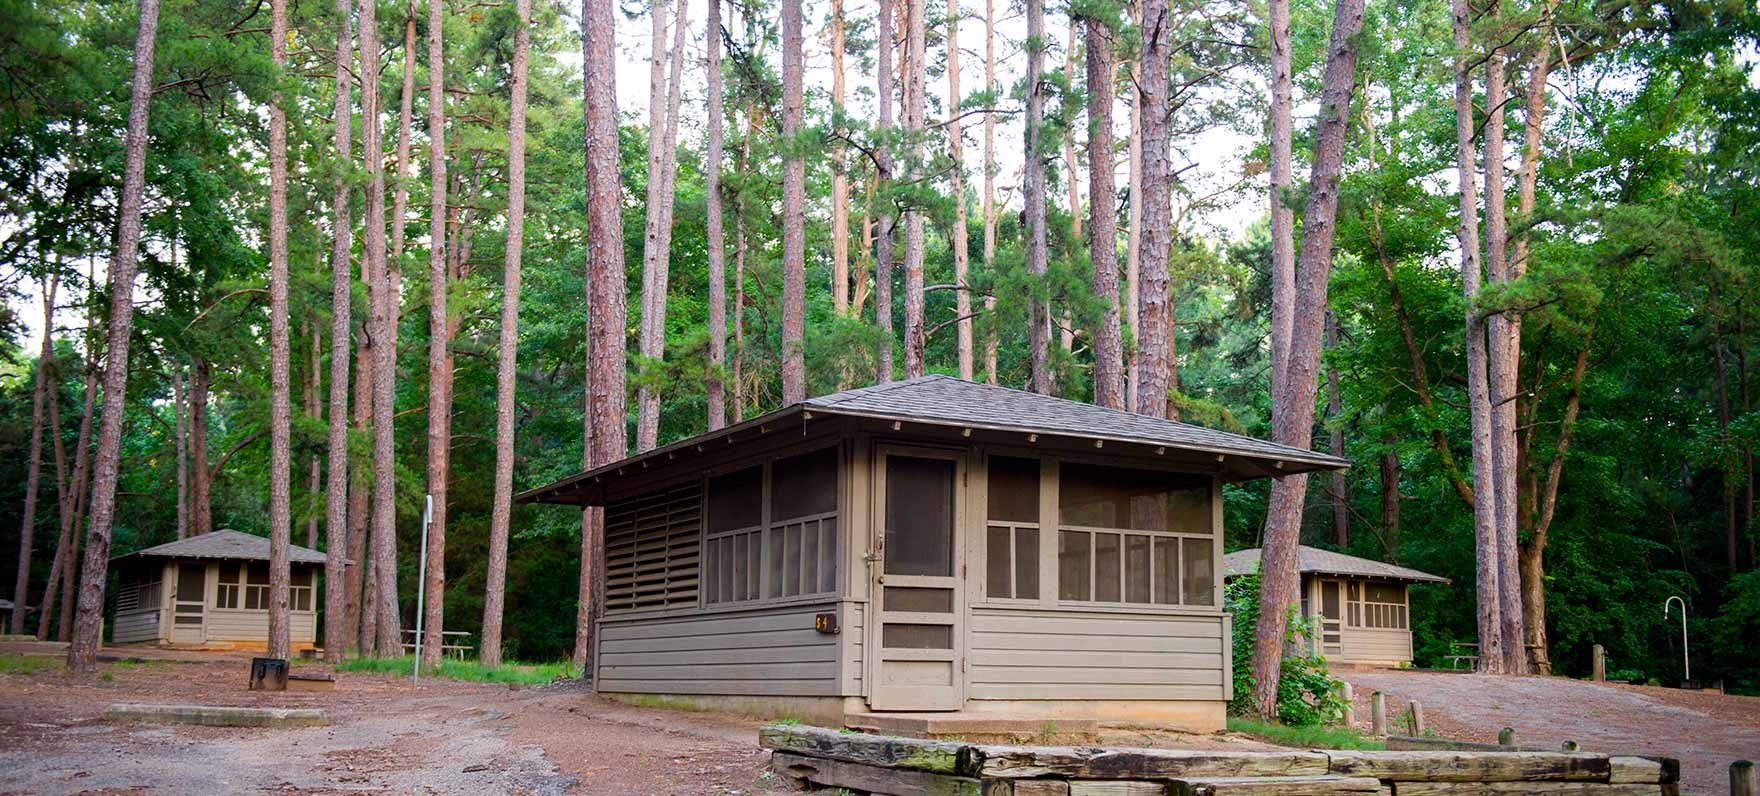 Tyler state park texas parks wildlife department for Camp sites with cabins